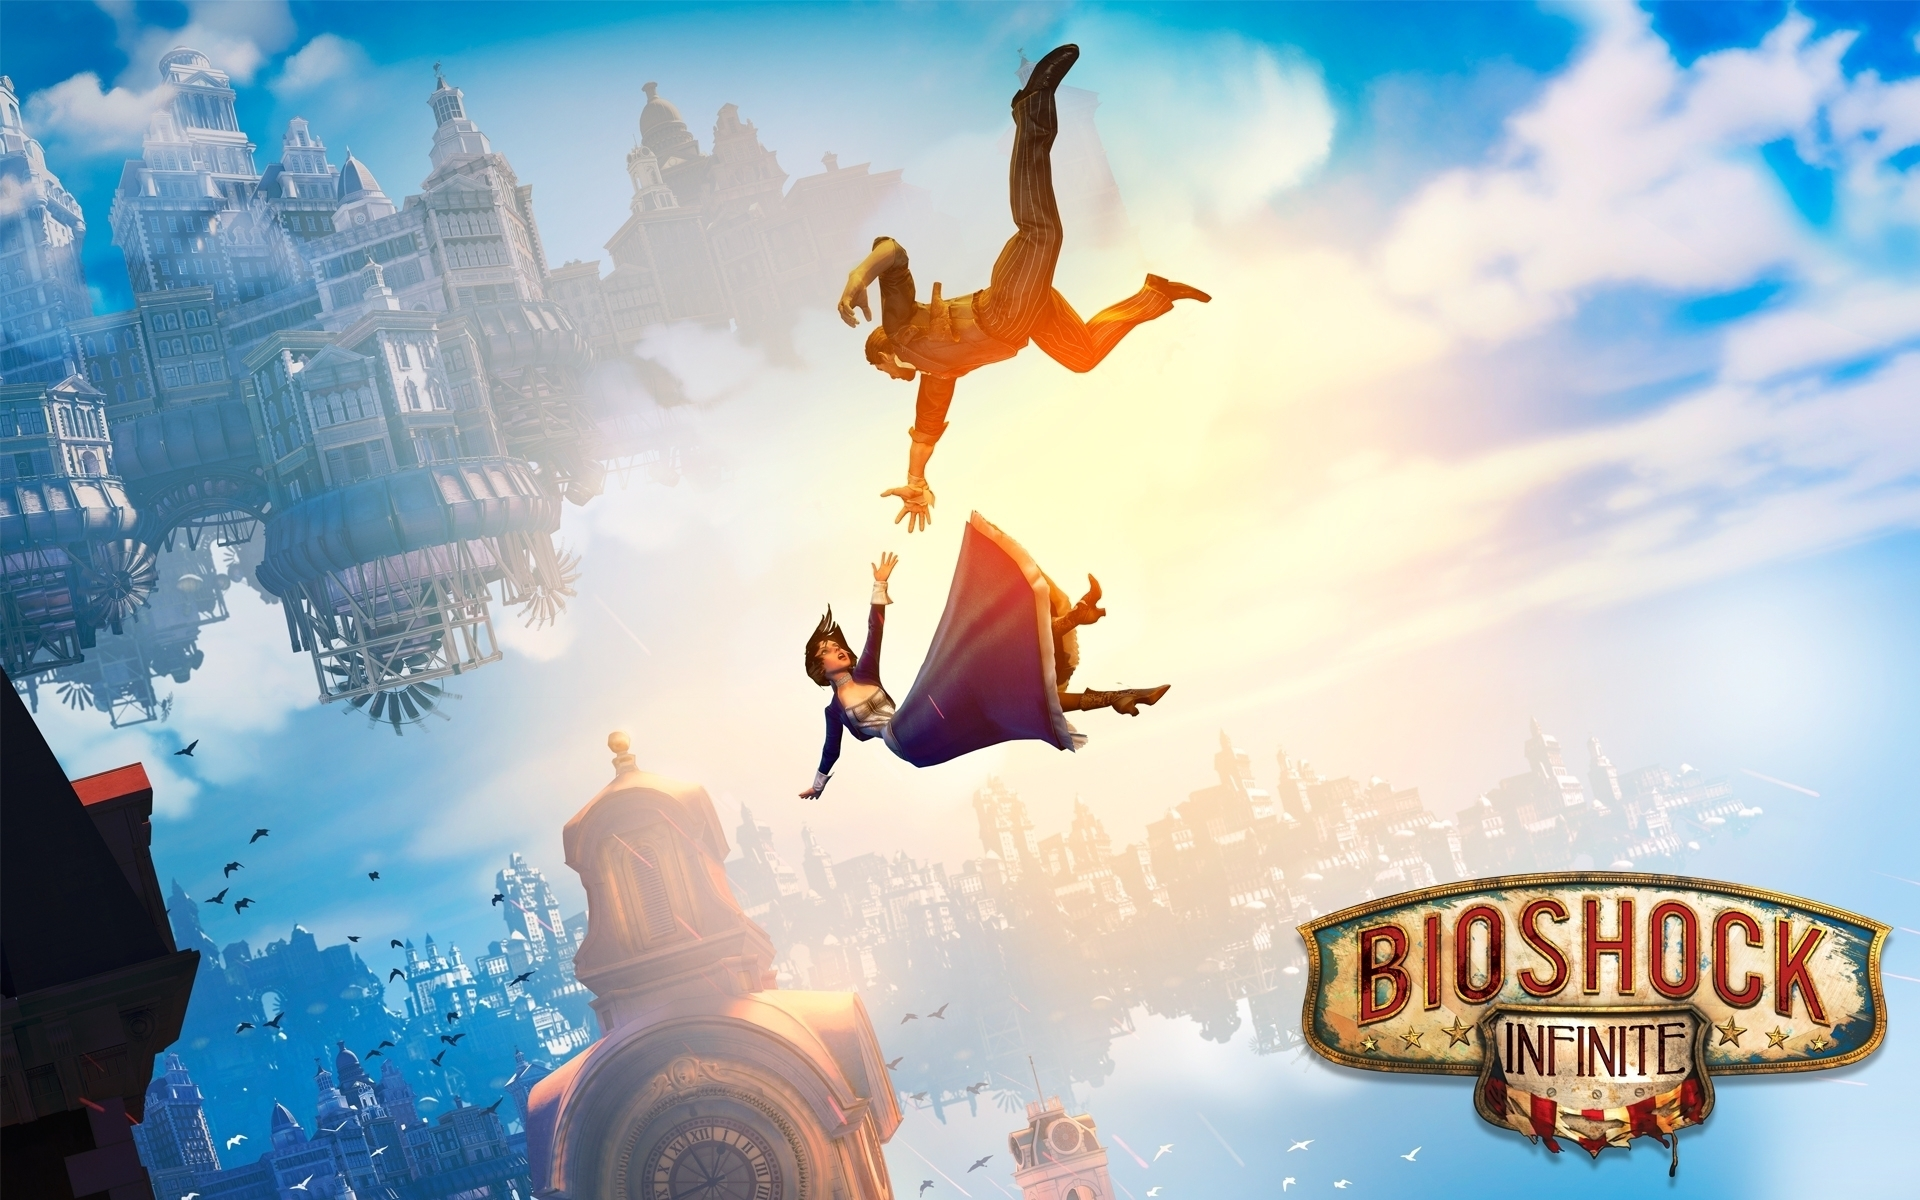 BioShock Infinite Video Game wallpaper